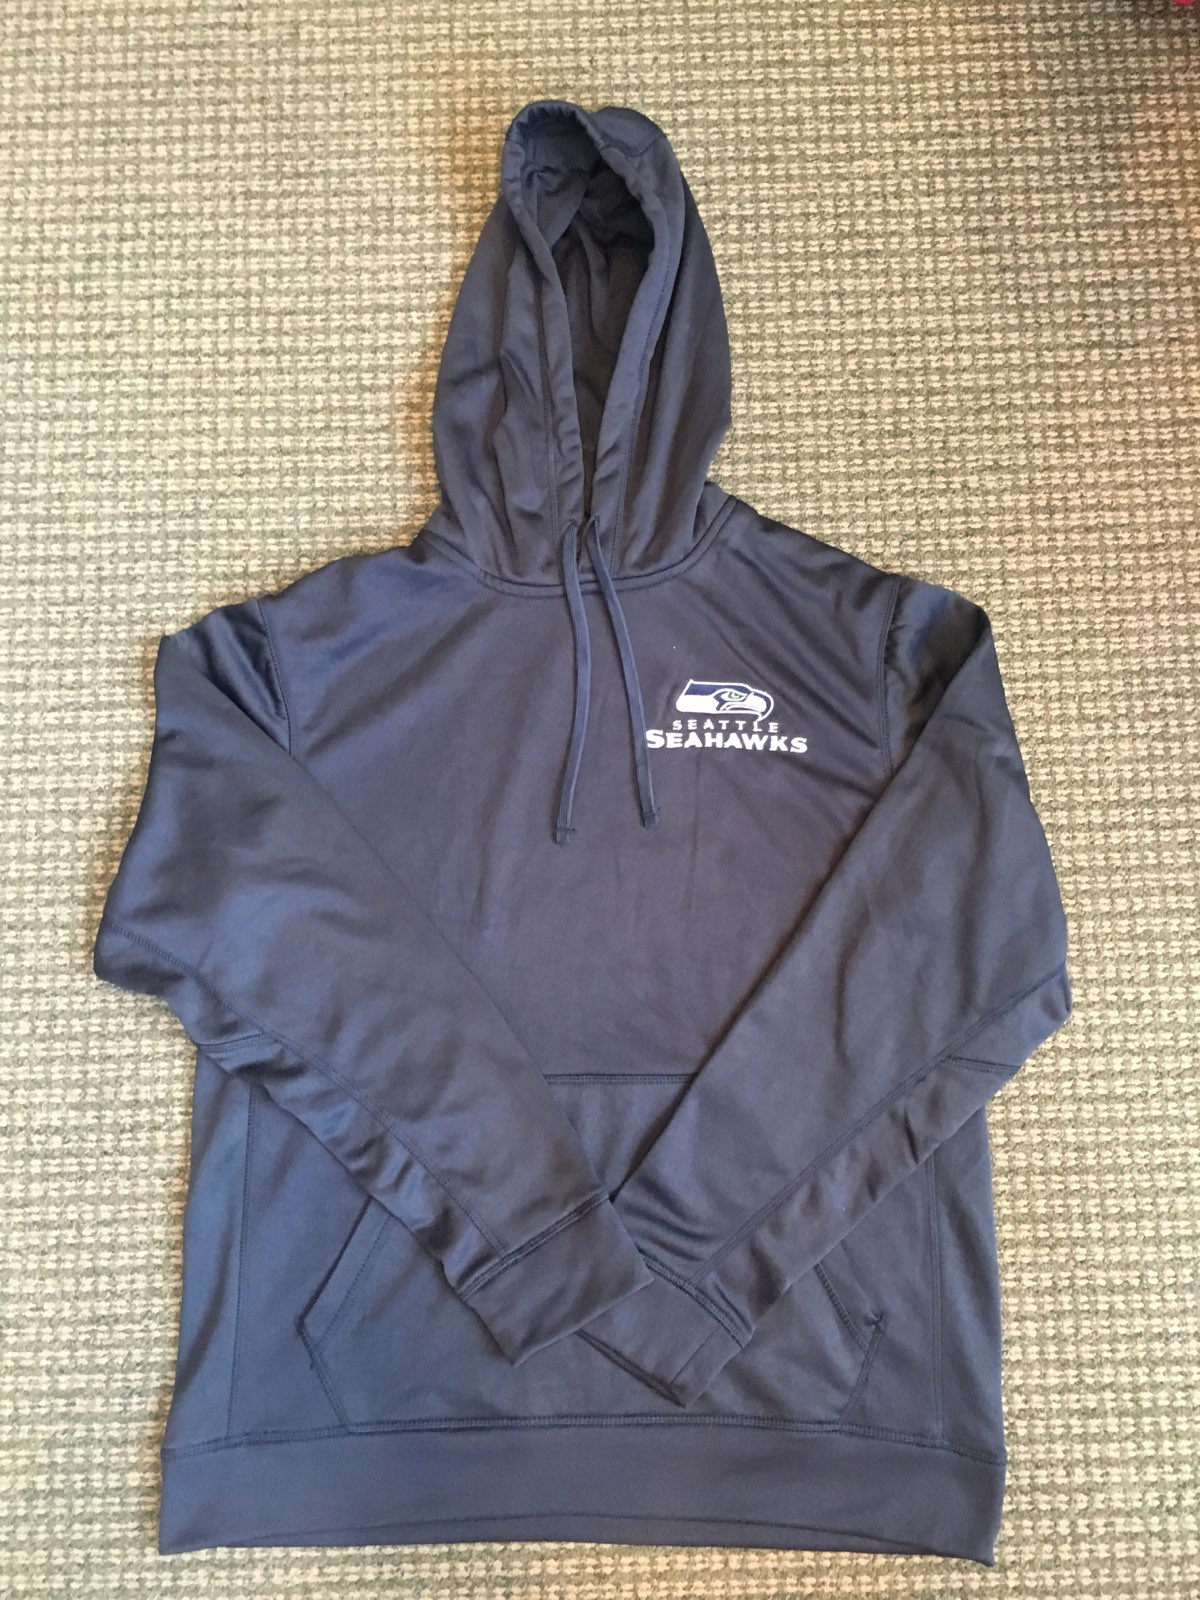 Seahawks Dunbrooke Hoodie Navy , 100% Polyester Size XXL